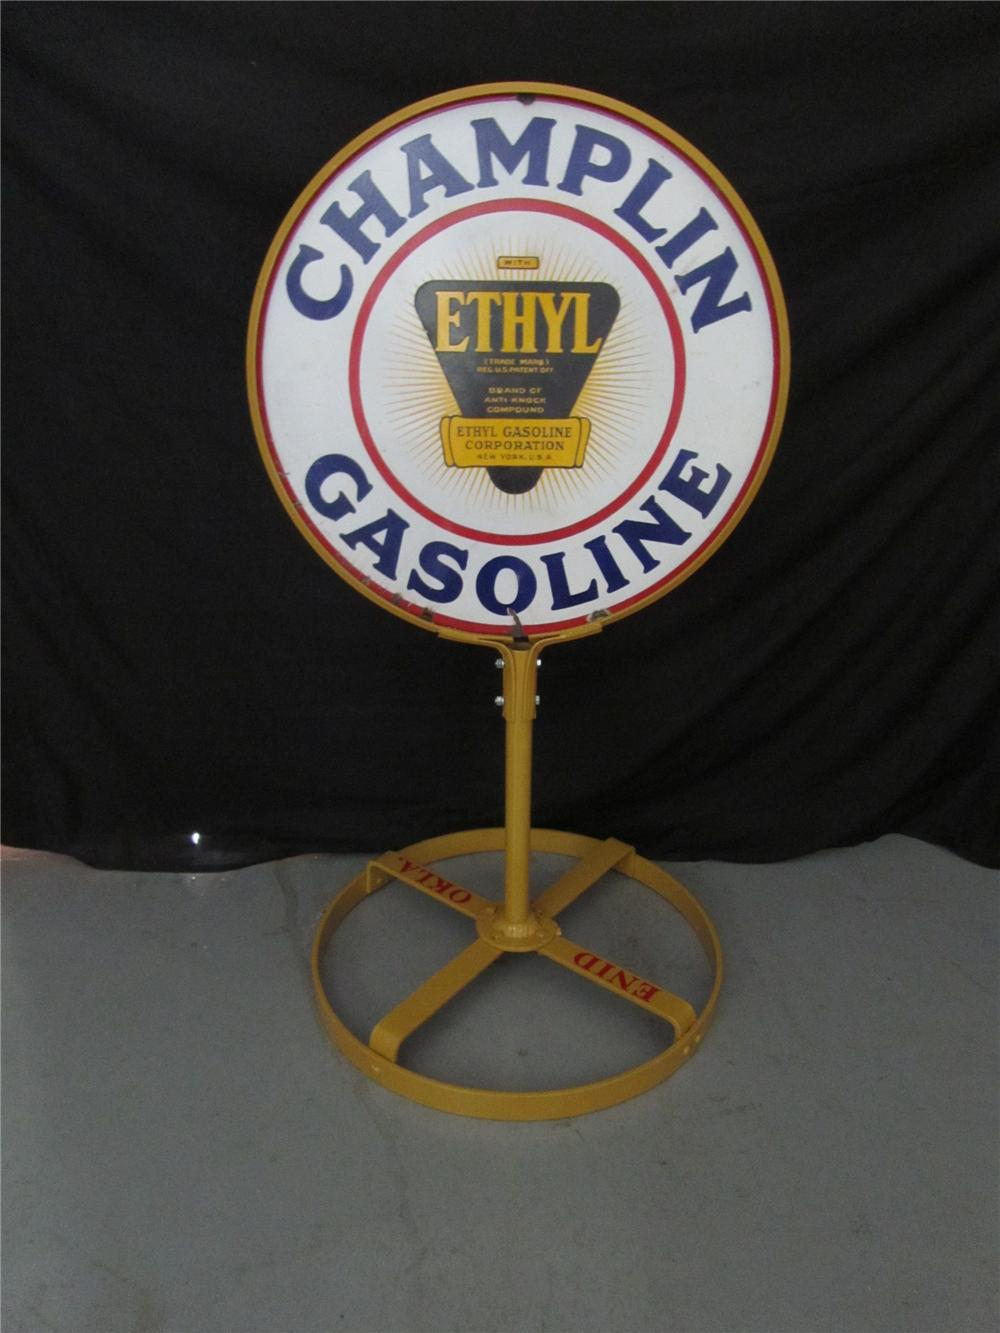 Addendum Item - Superb 1930s Champlin Gasoline with Ethyl double-sided porcelain curb sign on stand. - Front 3/4 - 144253